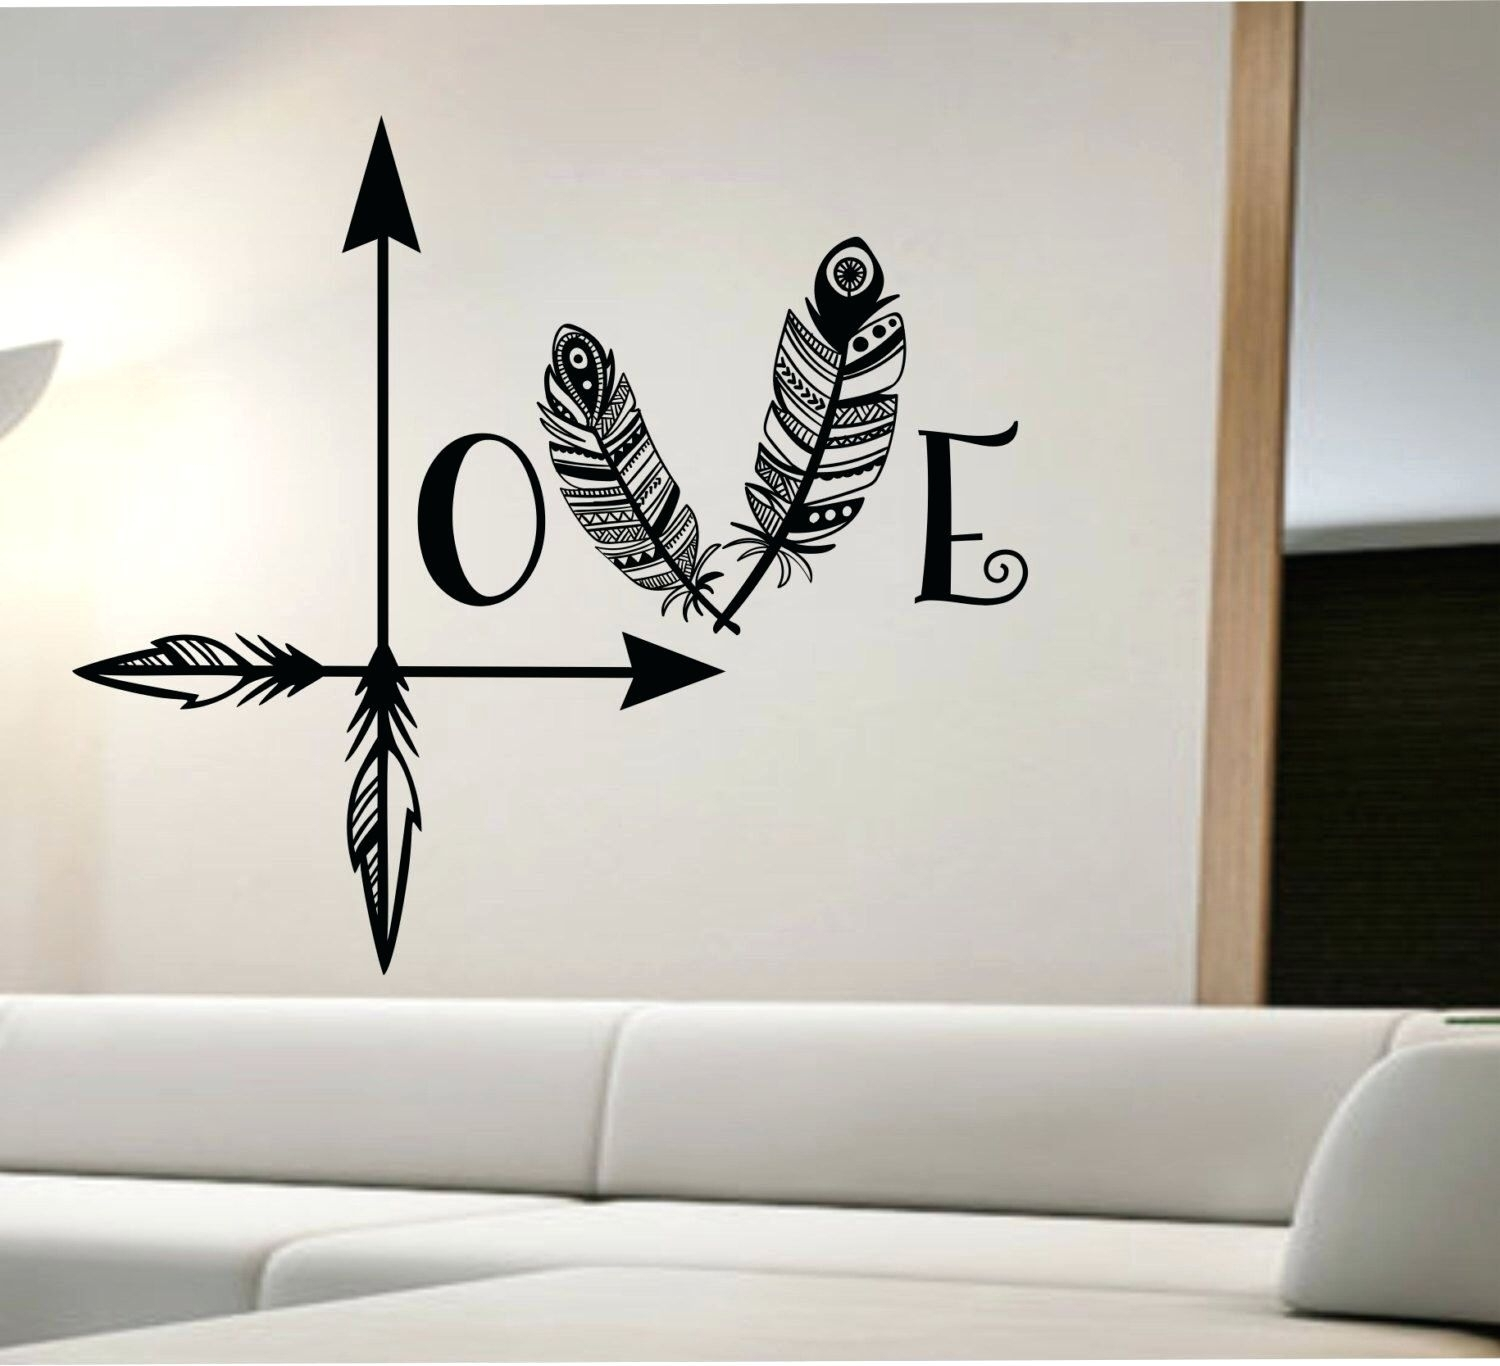 Bedroom : Wall Arts Love Heart Art Canvas For Bedroom And Amusing Within Most Current Love Canvas Wall Art (View 2 of 15)